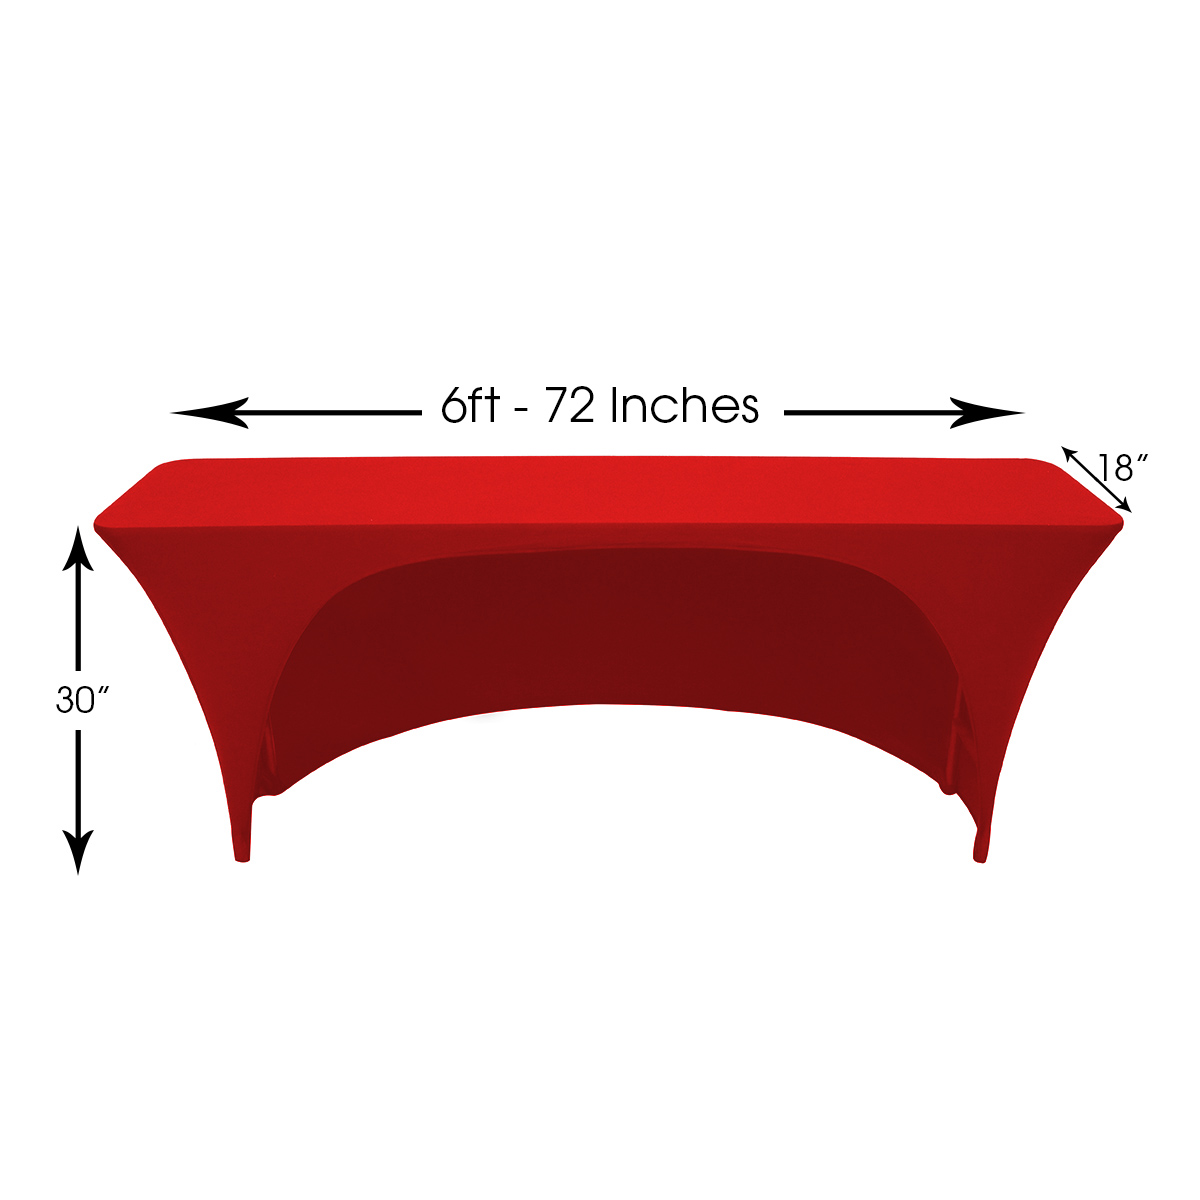 stretch-spandex-6ft-18-inches-open-back-rectangular-table-covers-red-dimensions.jpg